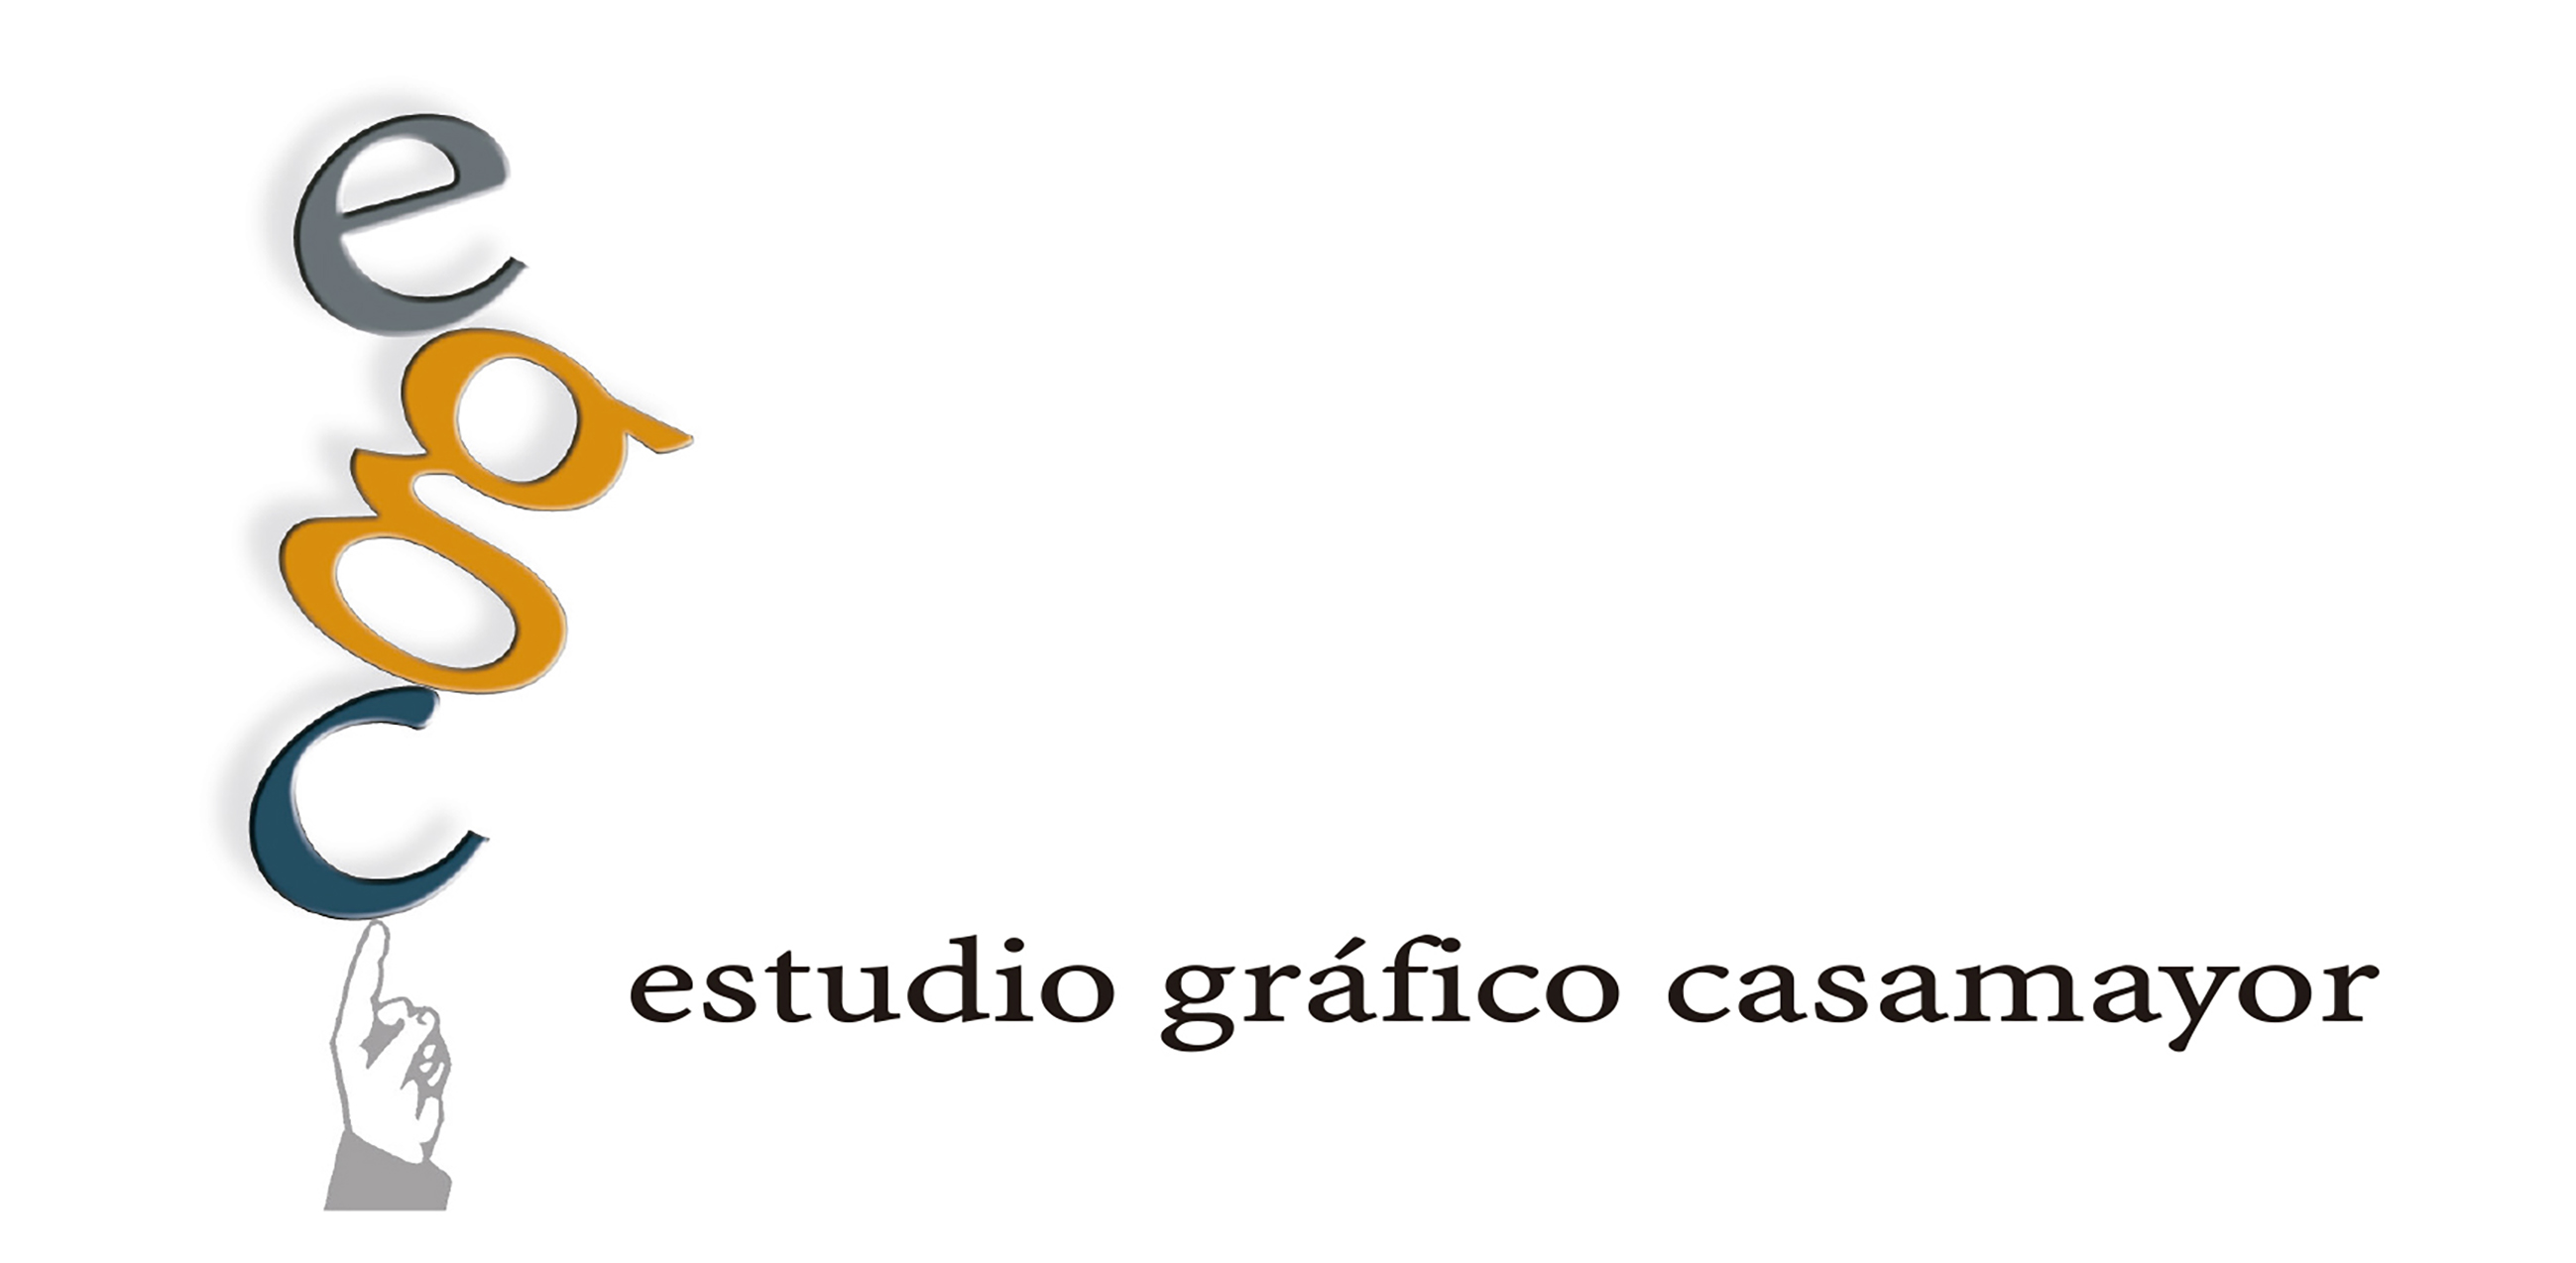 estudio grafico casamayor